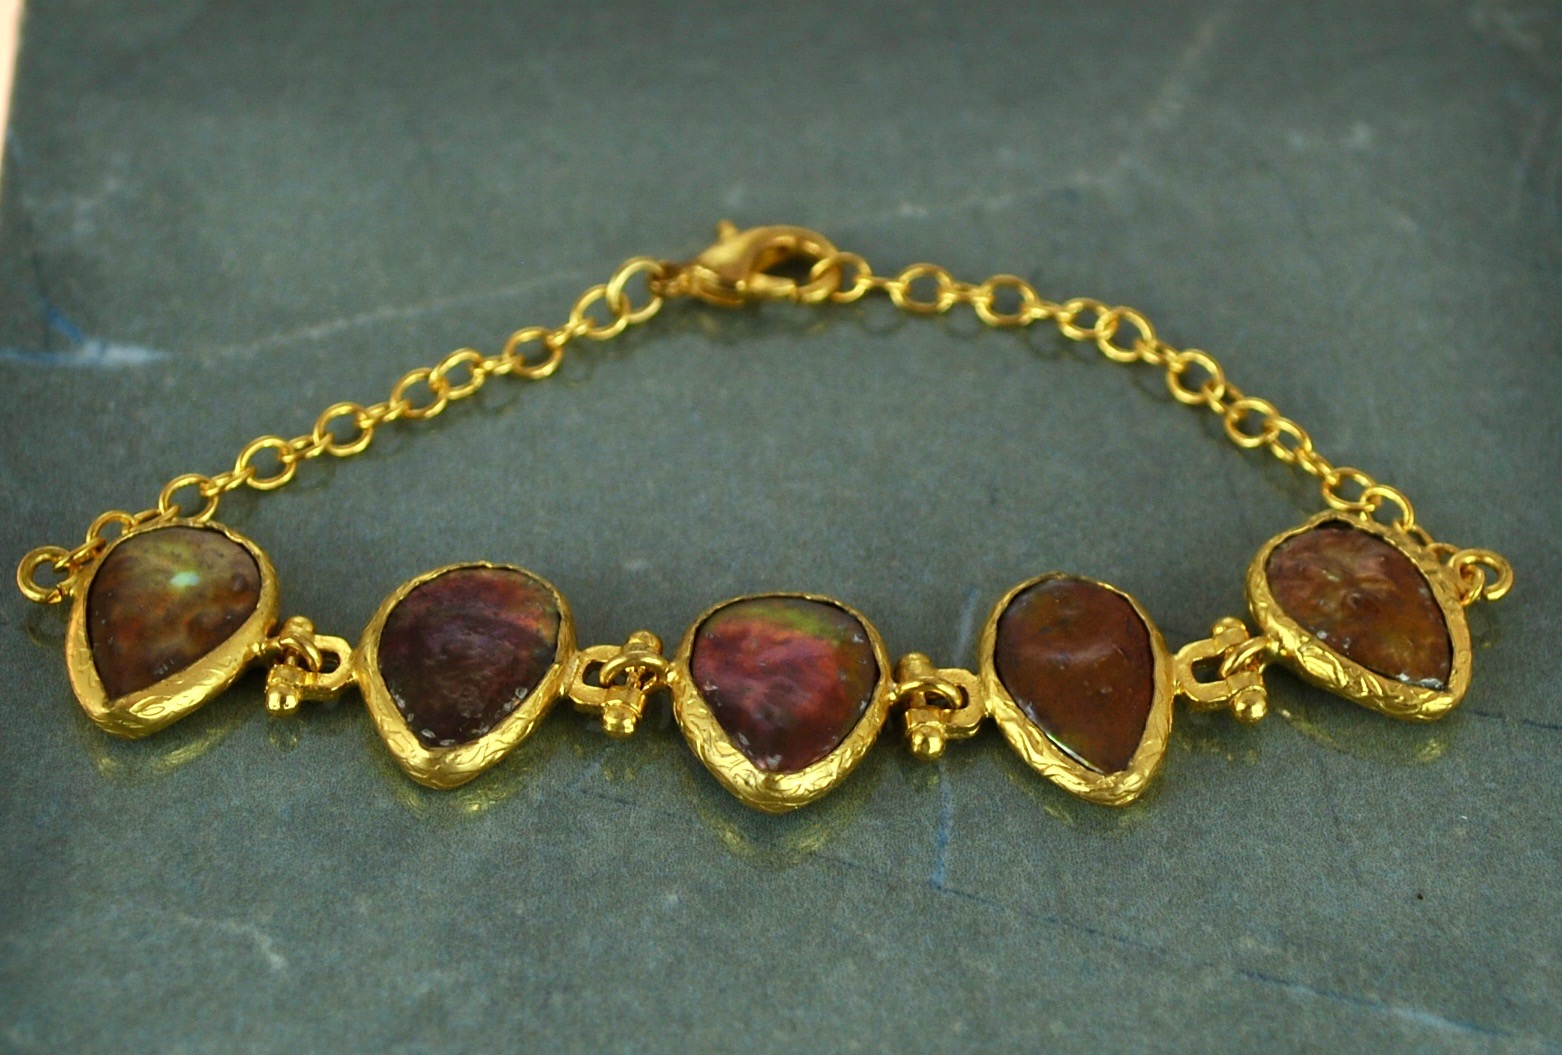 Rust Mother of pearl bracelet in 22k Gold vermeil